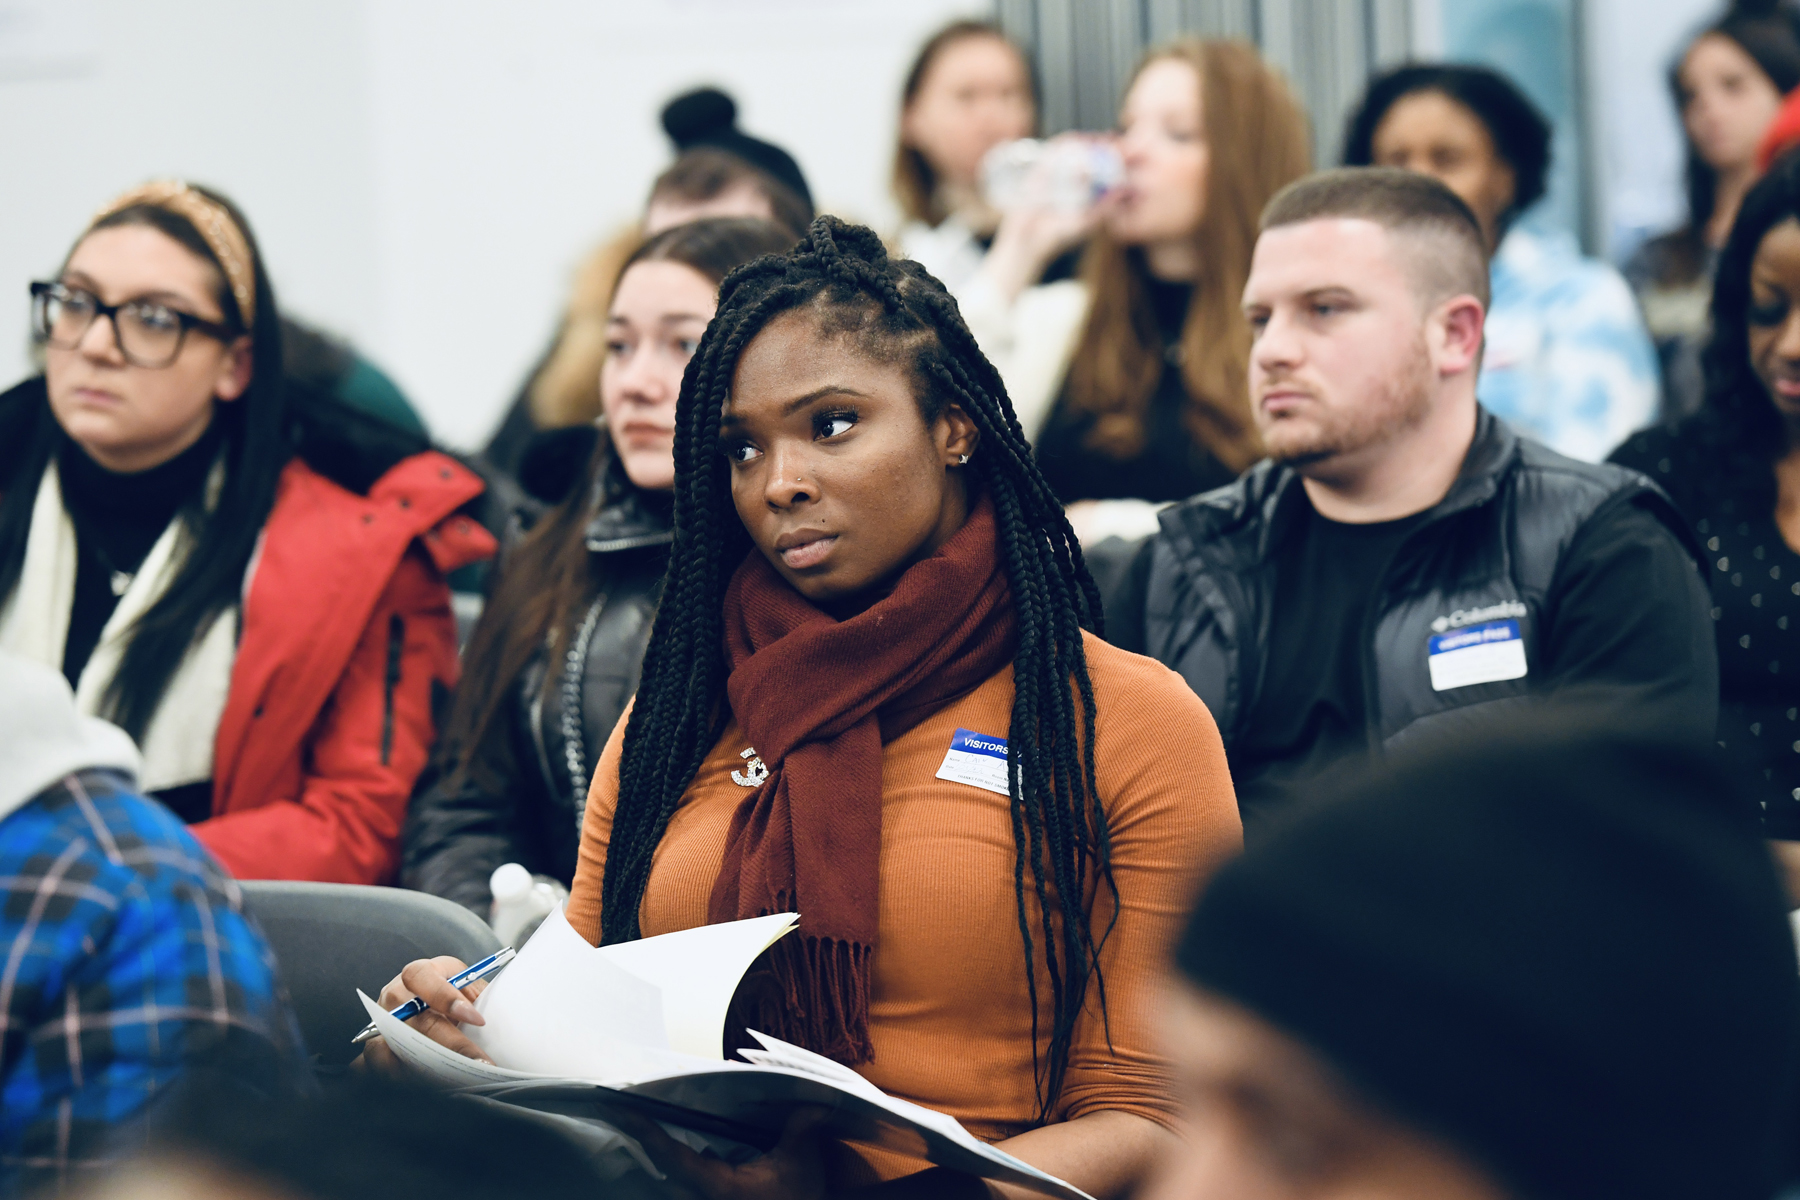 Focusing on the future: At the recent orientation for new NYSCAS students, applicants from across the city learned valuable information and began friendships that would last their academic careers and beyond.